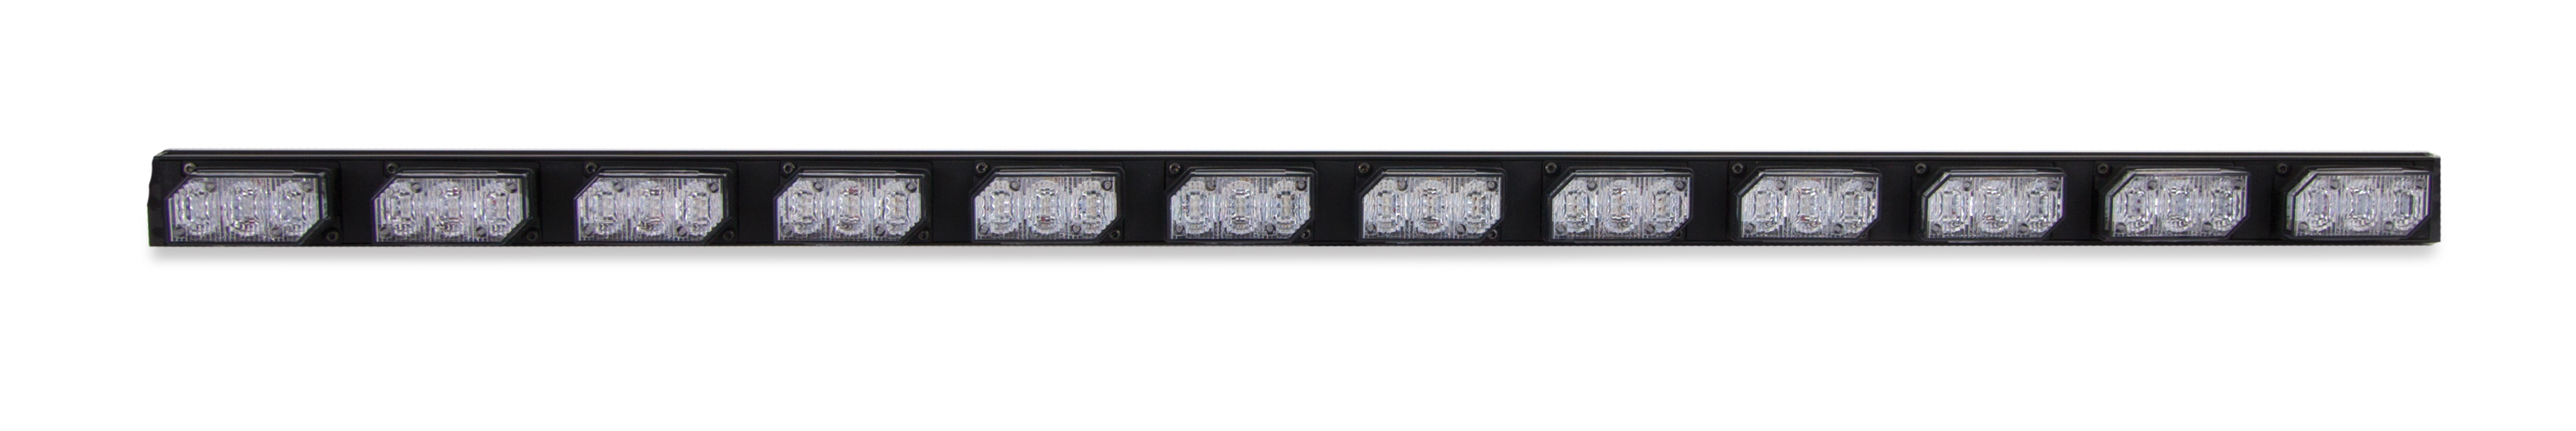 UltraLITE Plus Exterior LED Warning Bar Product Image